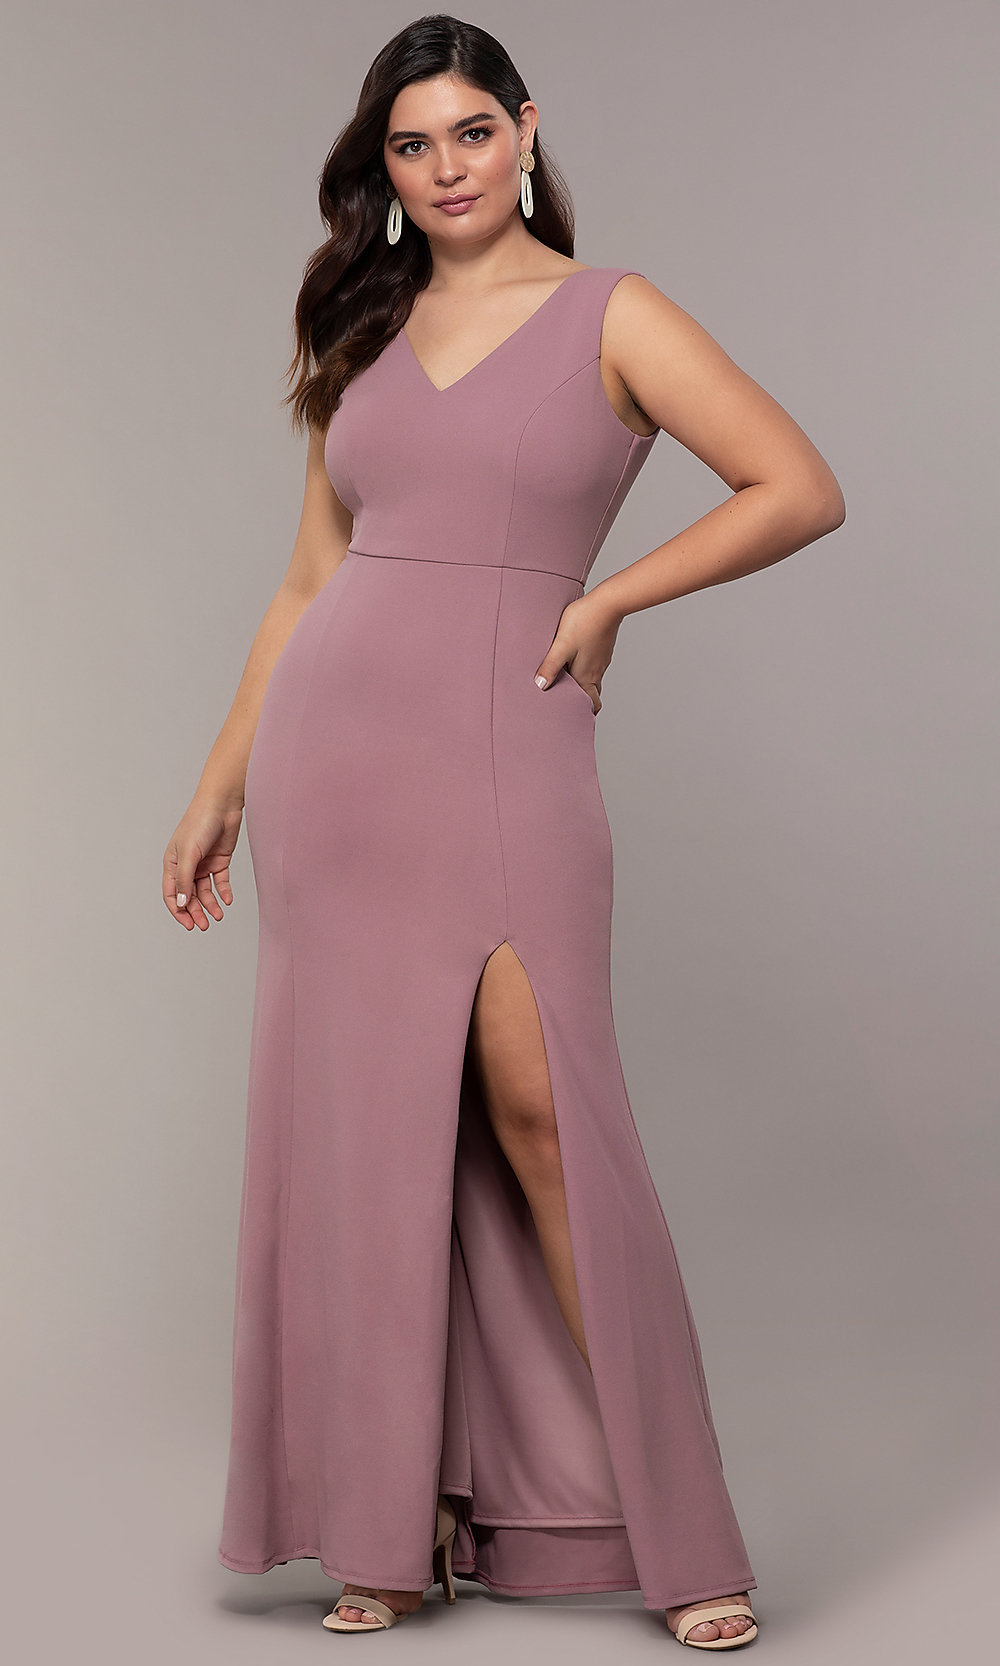 Plus-Sized V-Neck Long Pink Formal Dress by Simply